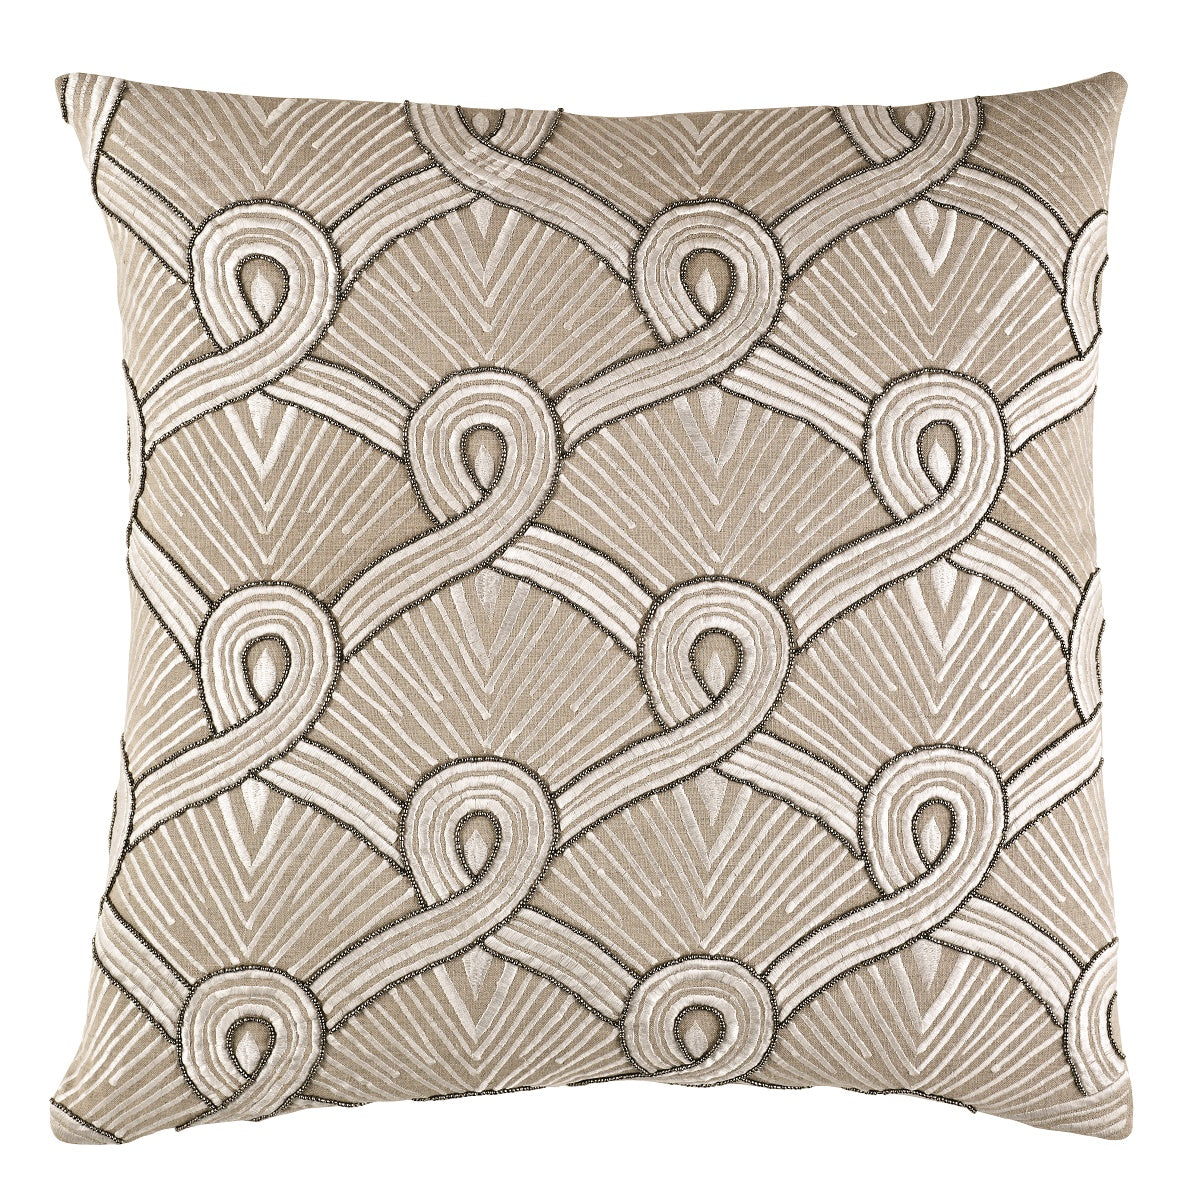 A decorative pillow with an art deco flair